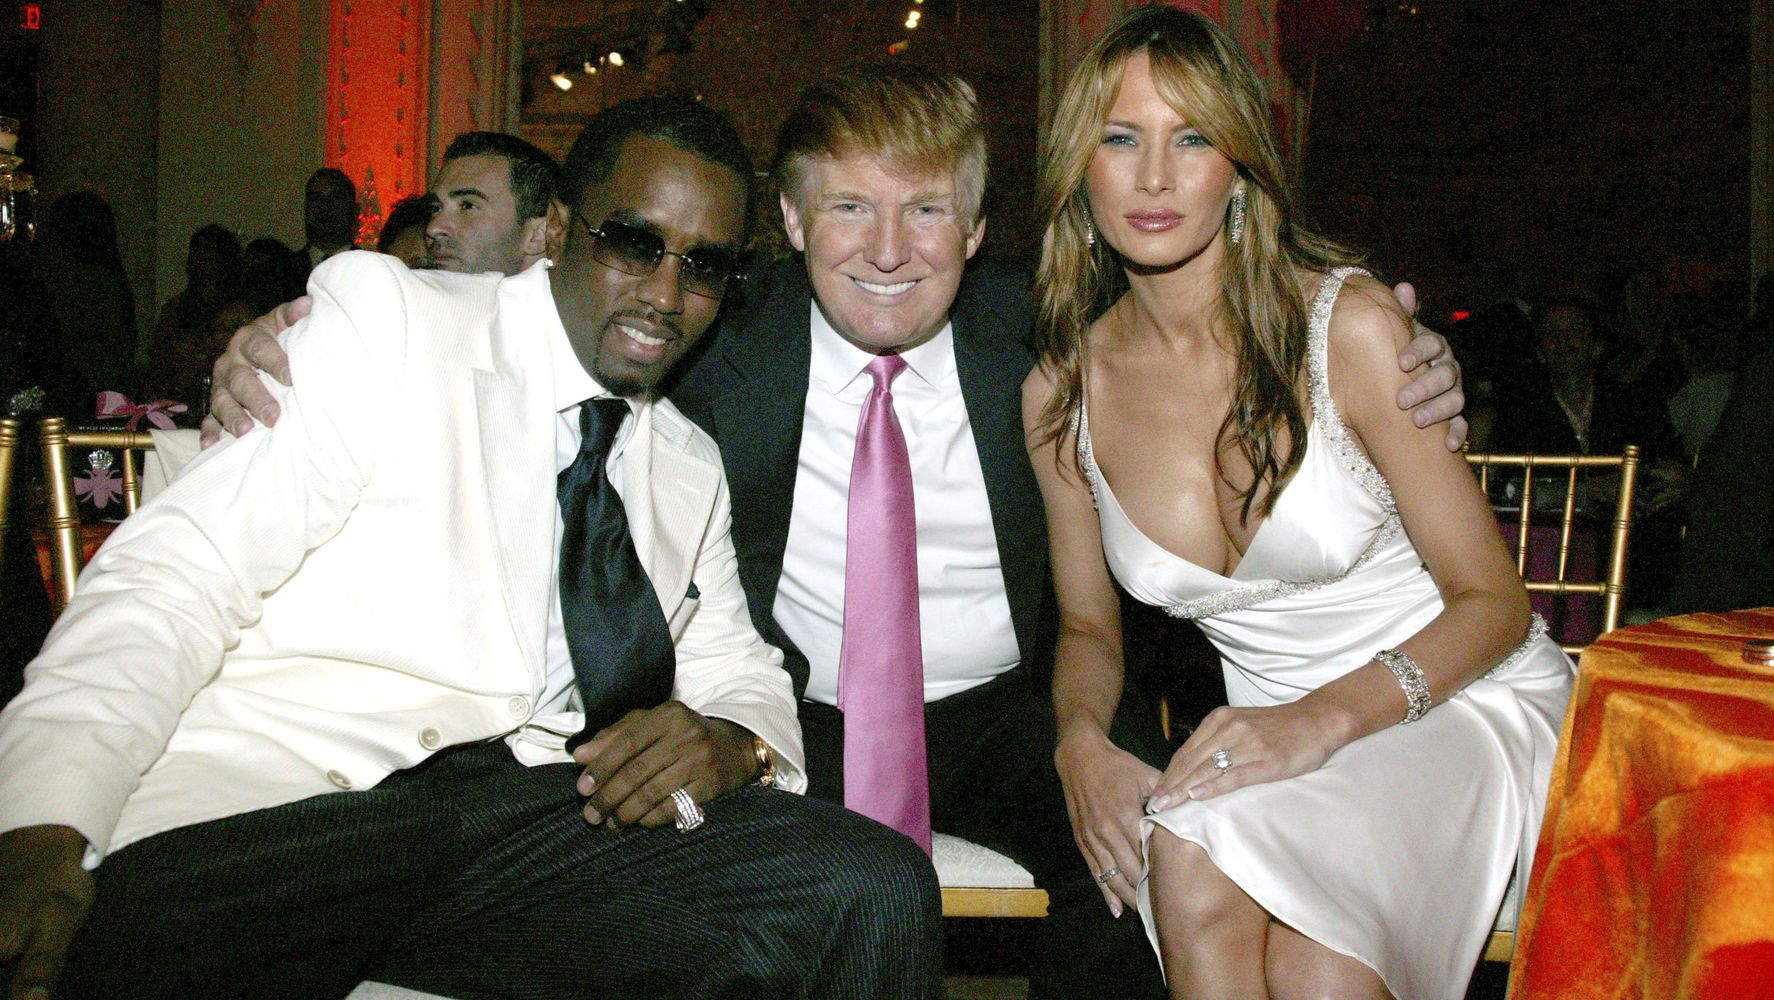 Trump And Melania Wedding.These Are The Famous People Who Attended Donald Trump S Wedding To